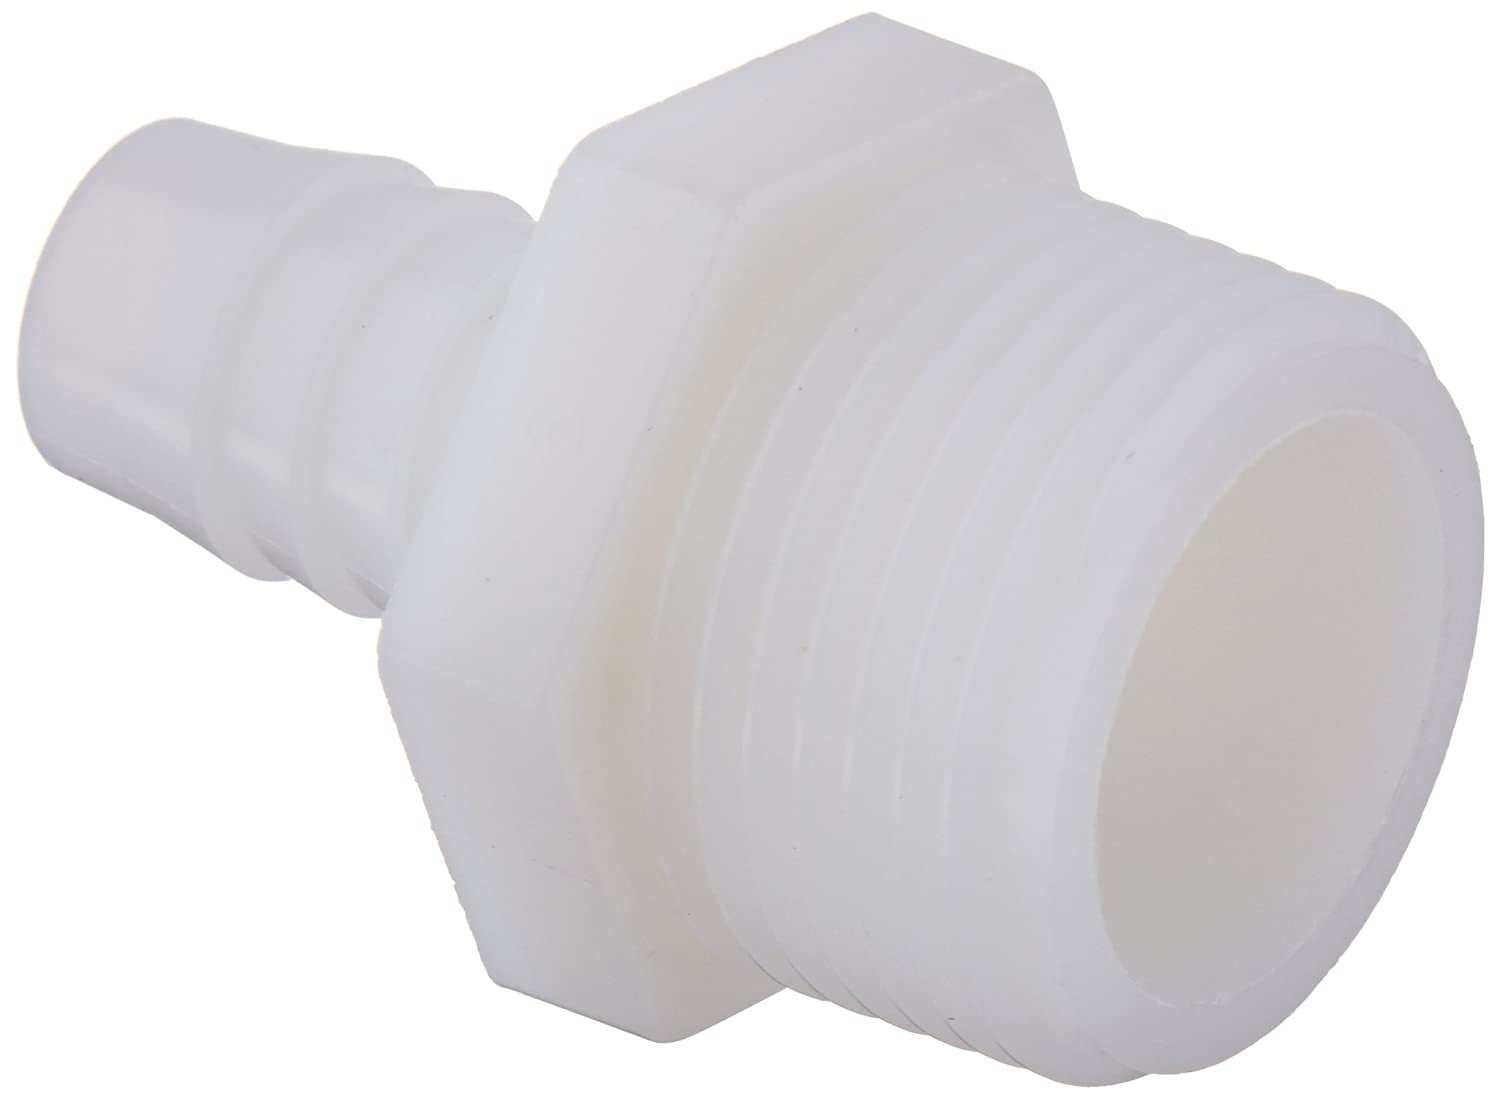 "Parker Hannifin 325HB-8-12N Par-Barb Nylon Male Connector Fitting, 1/2"" Hose Barb x 3/4"" Male NPT, White"